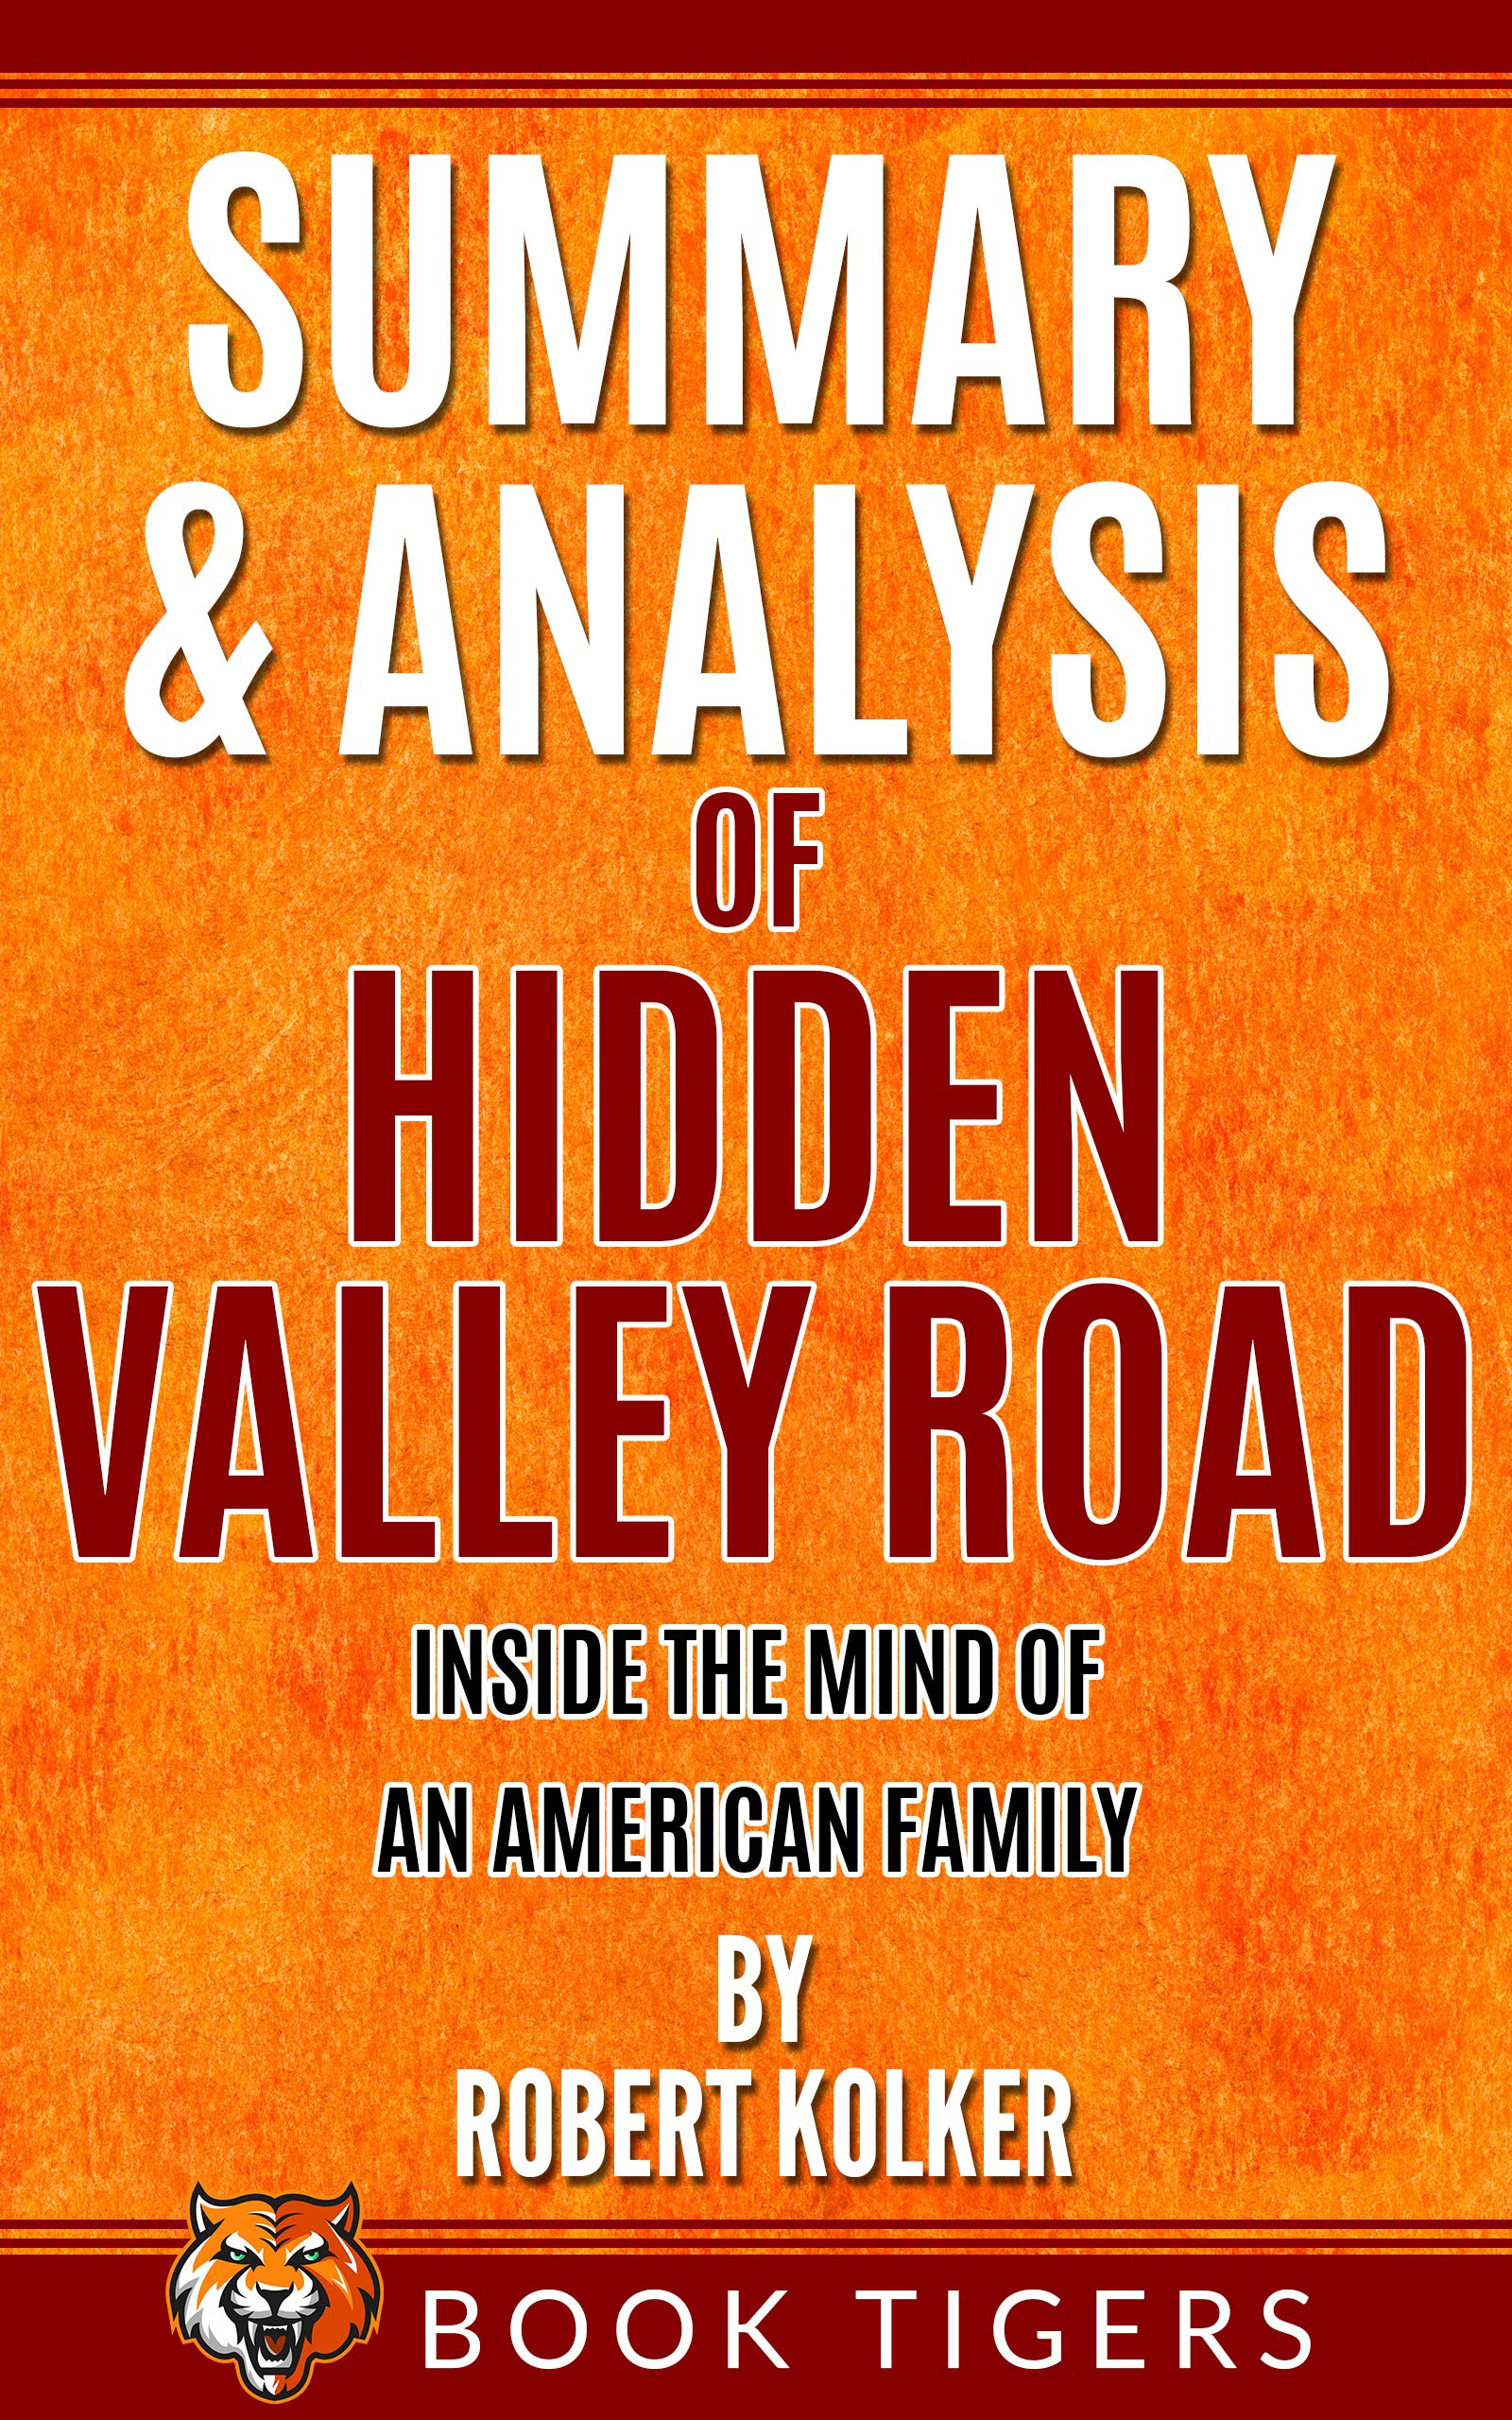 Summary and Analysis of: Hidden Valley Road: Inside the Mind of an American Family